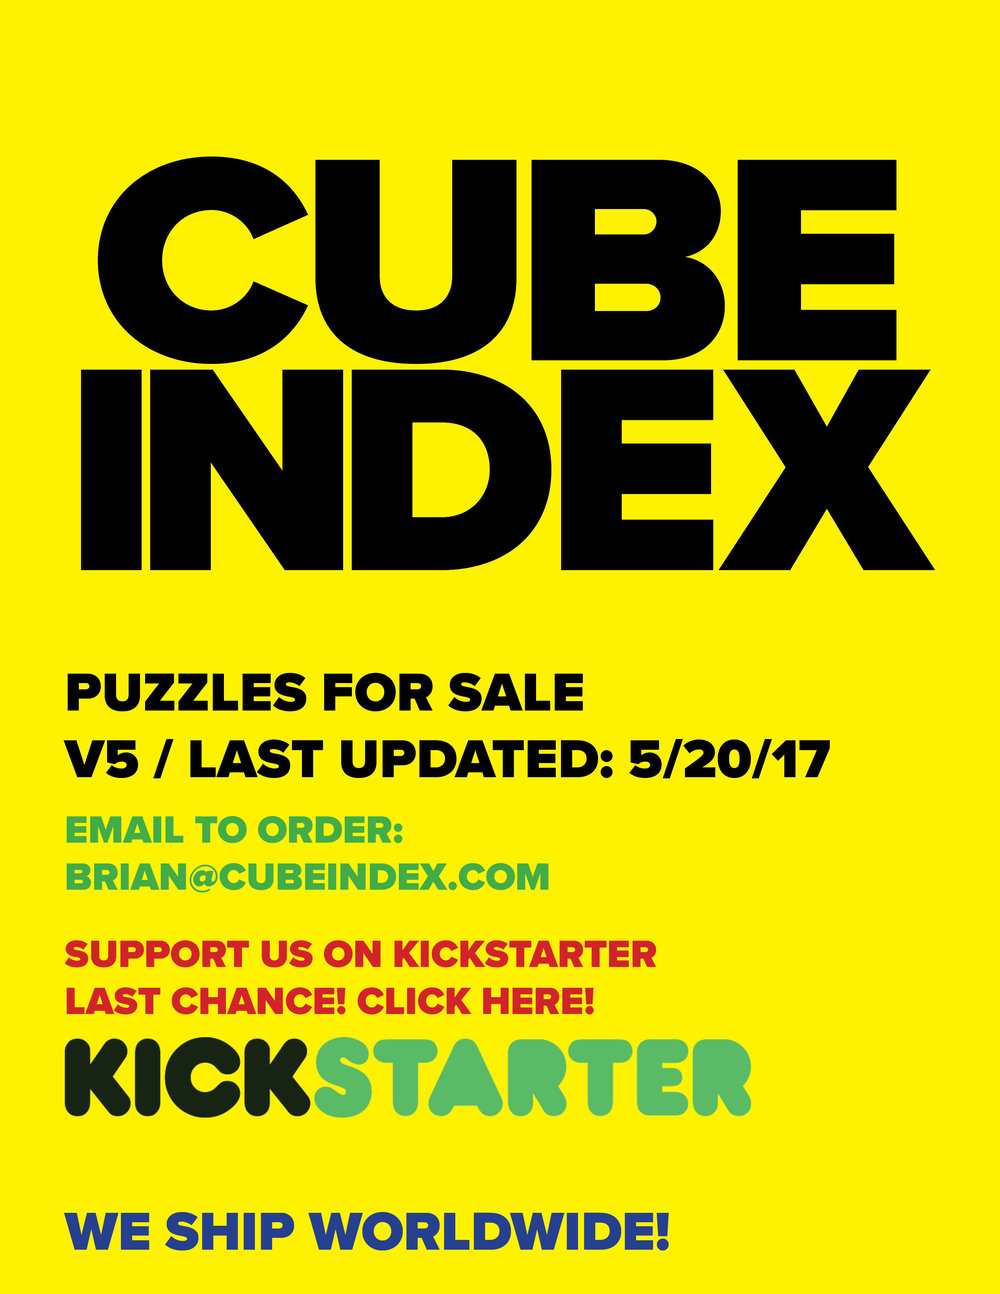 cube-index-for-sale-catalog-april-2017-v5.jpg